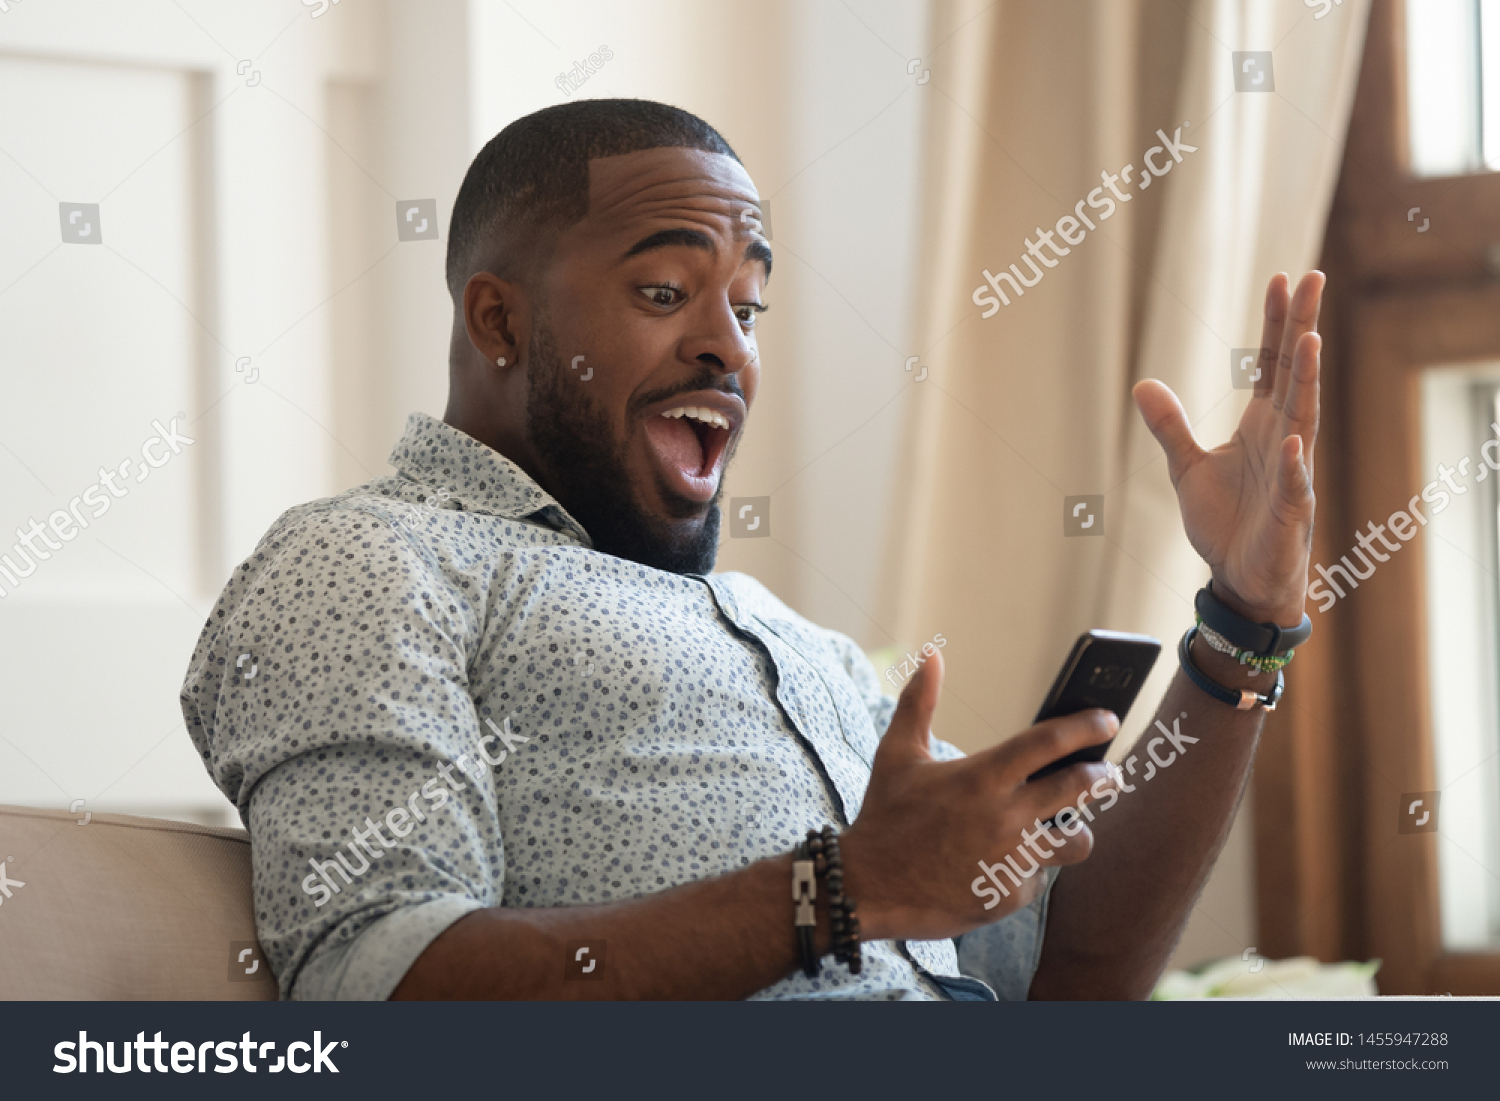 Surprised happy african man holding phone looking at cellphone read good news in sms sit on sofa, amazed black guy winner excited by mobile app win scream with joy celebrate victory success at home #1455947288